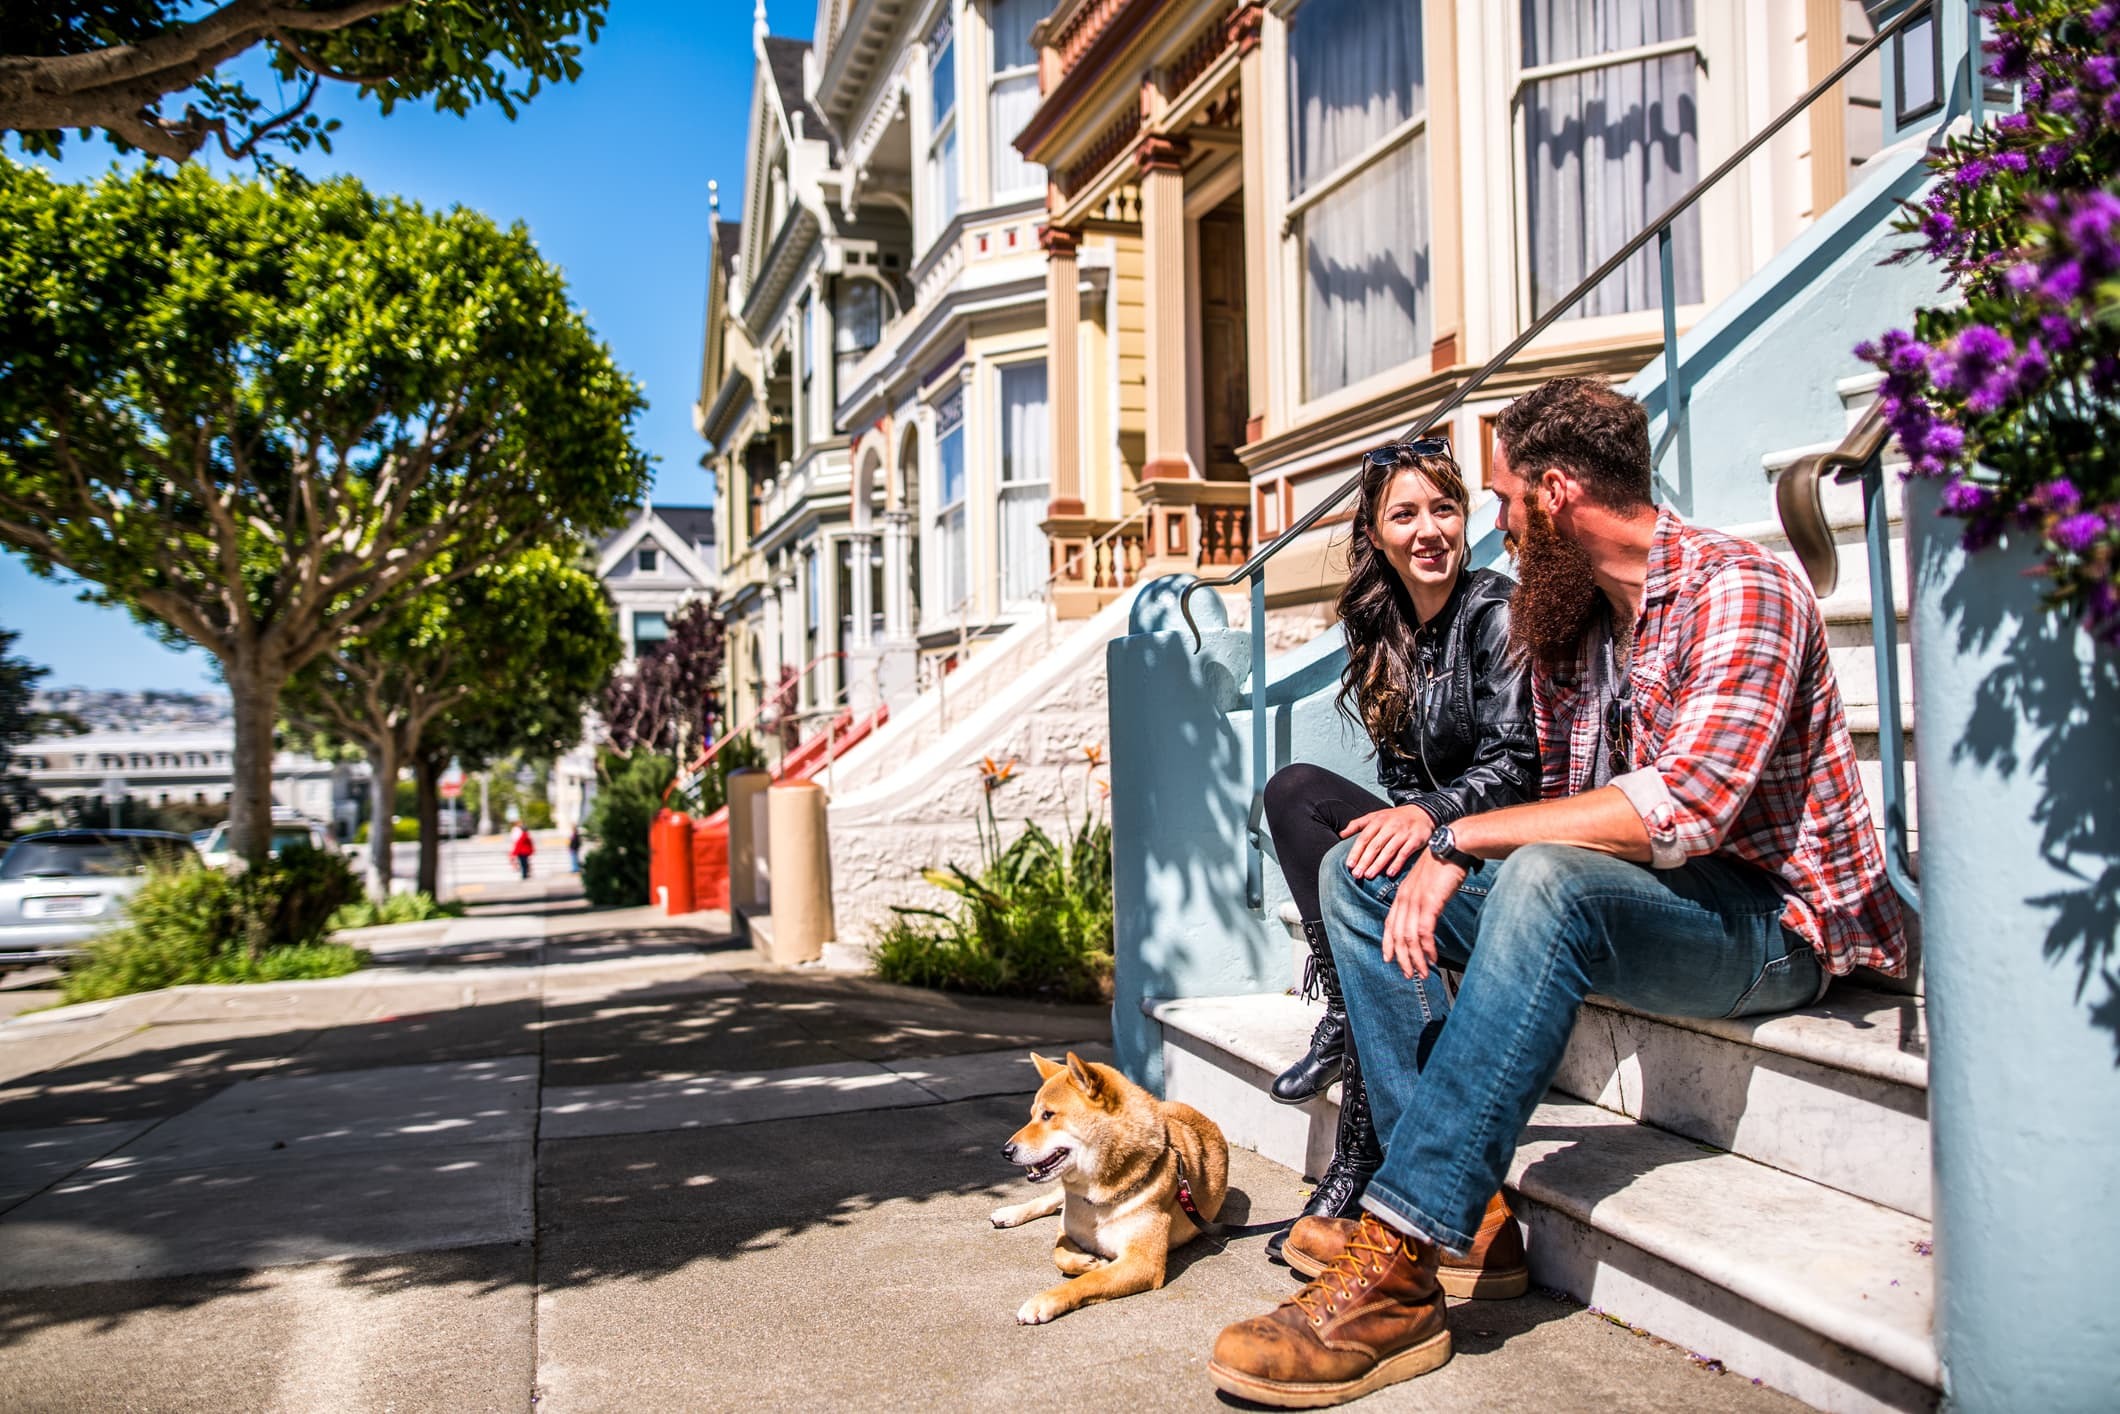 If you bought a house in San Francisco 10 years ago, here's how much it could be worth now